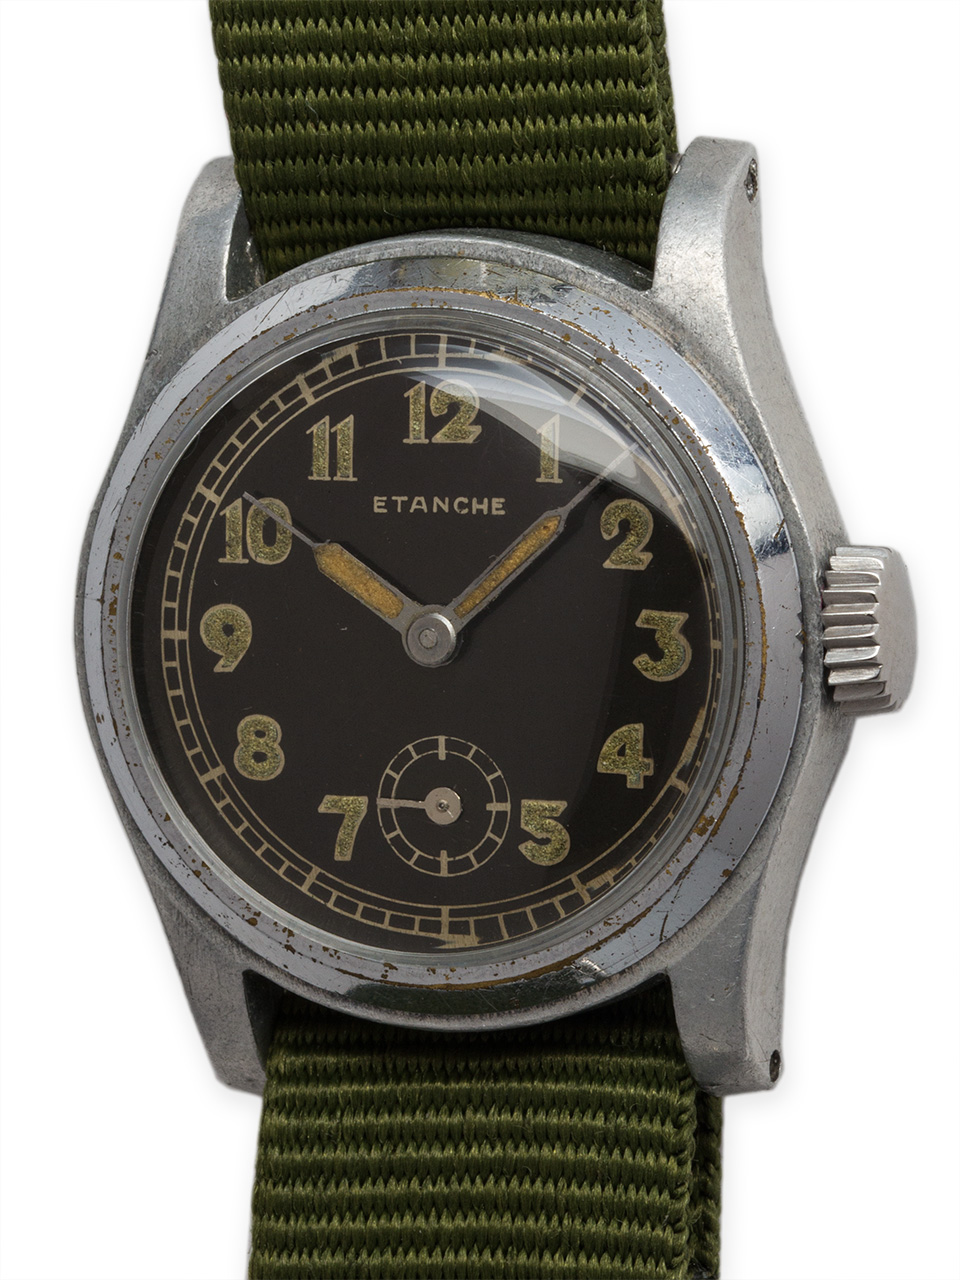 Etanche Swiss Military WWII